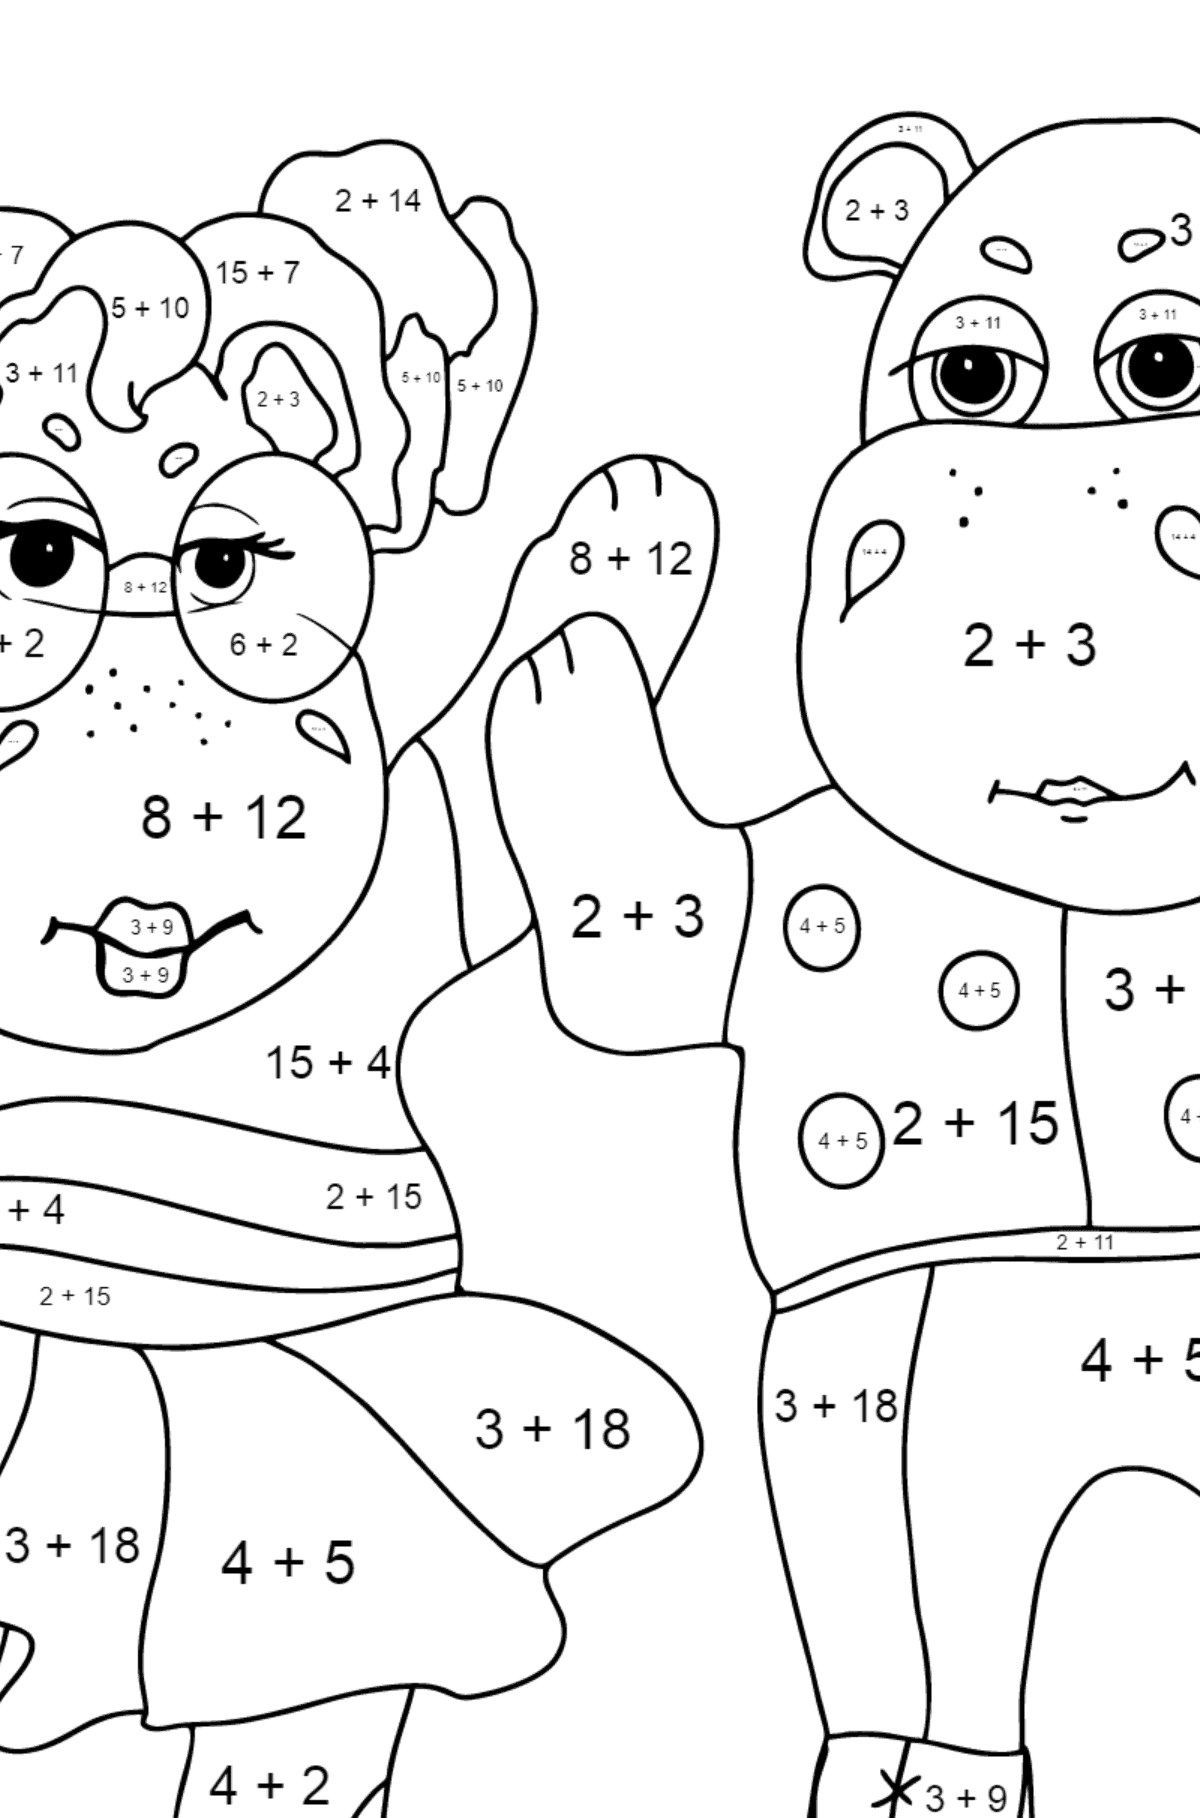 Coloring Page - Hippos are Dancing for Kids  - Color by Number Addition